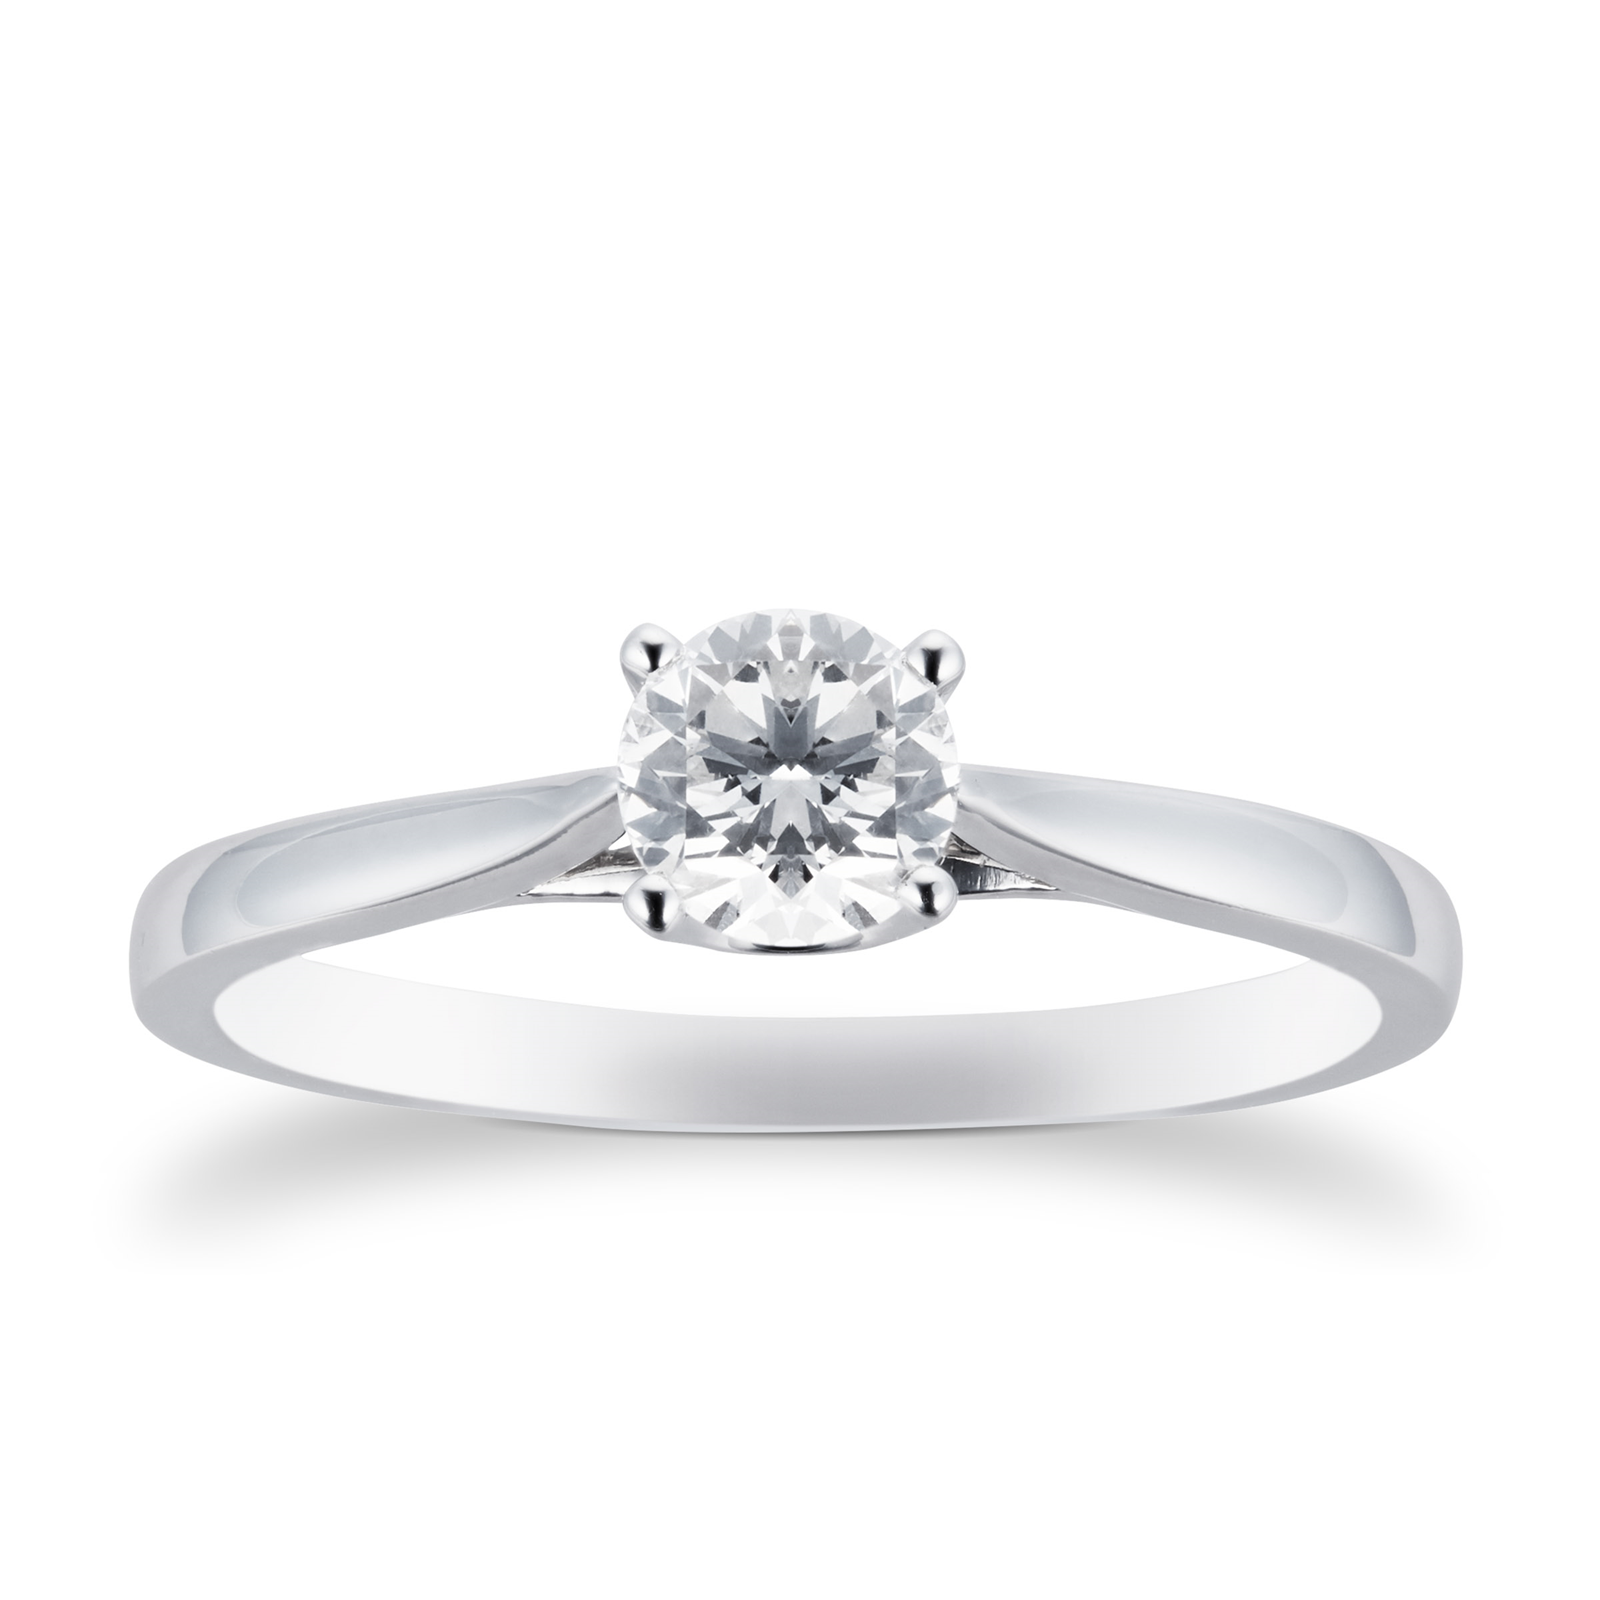 18ct White Gold Brilliant Cut 0.50 Carat 88 Facet Diamond Ring